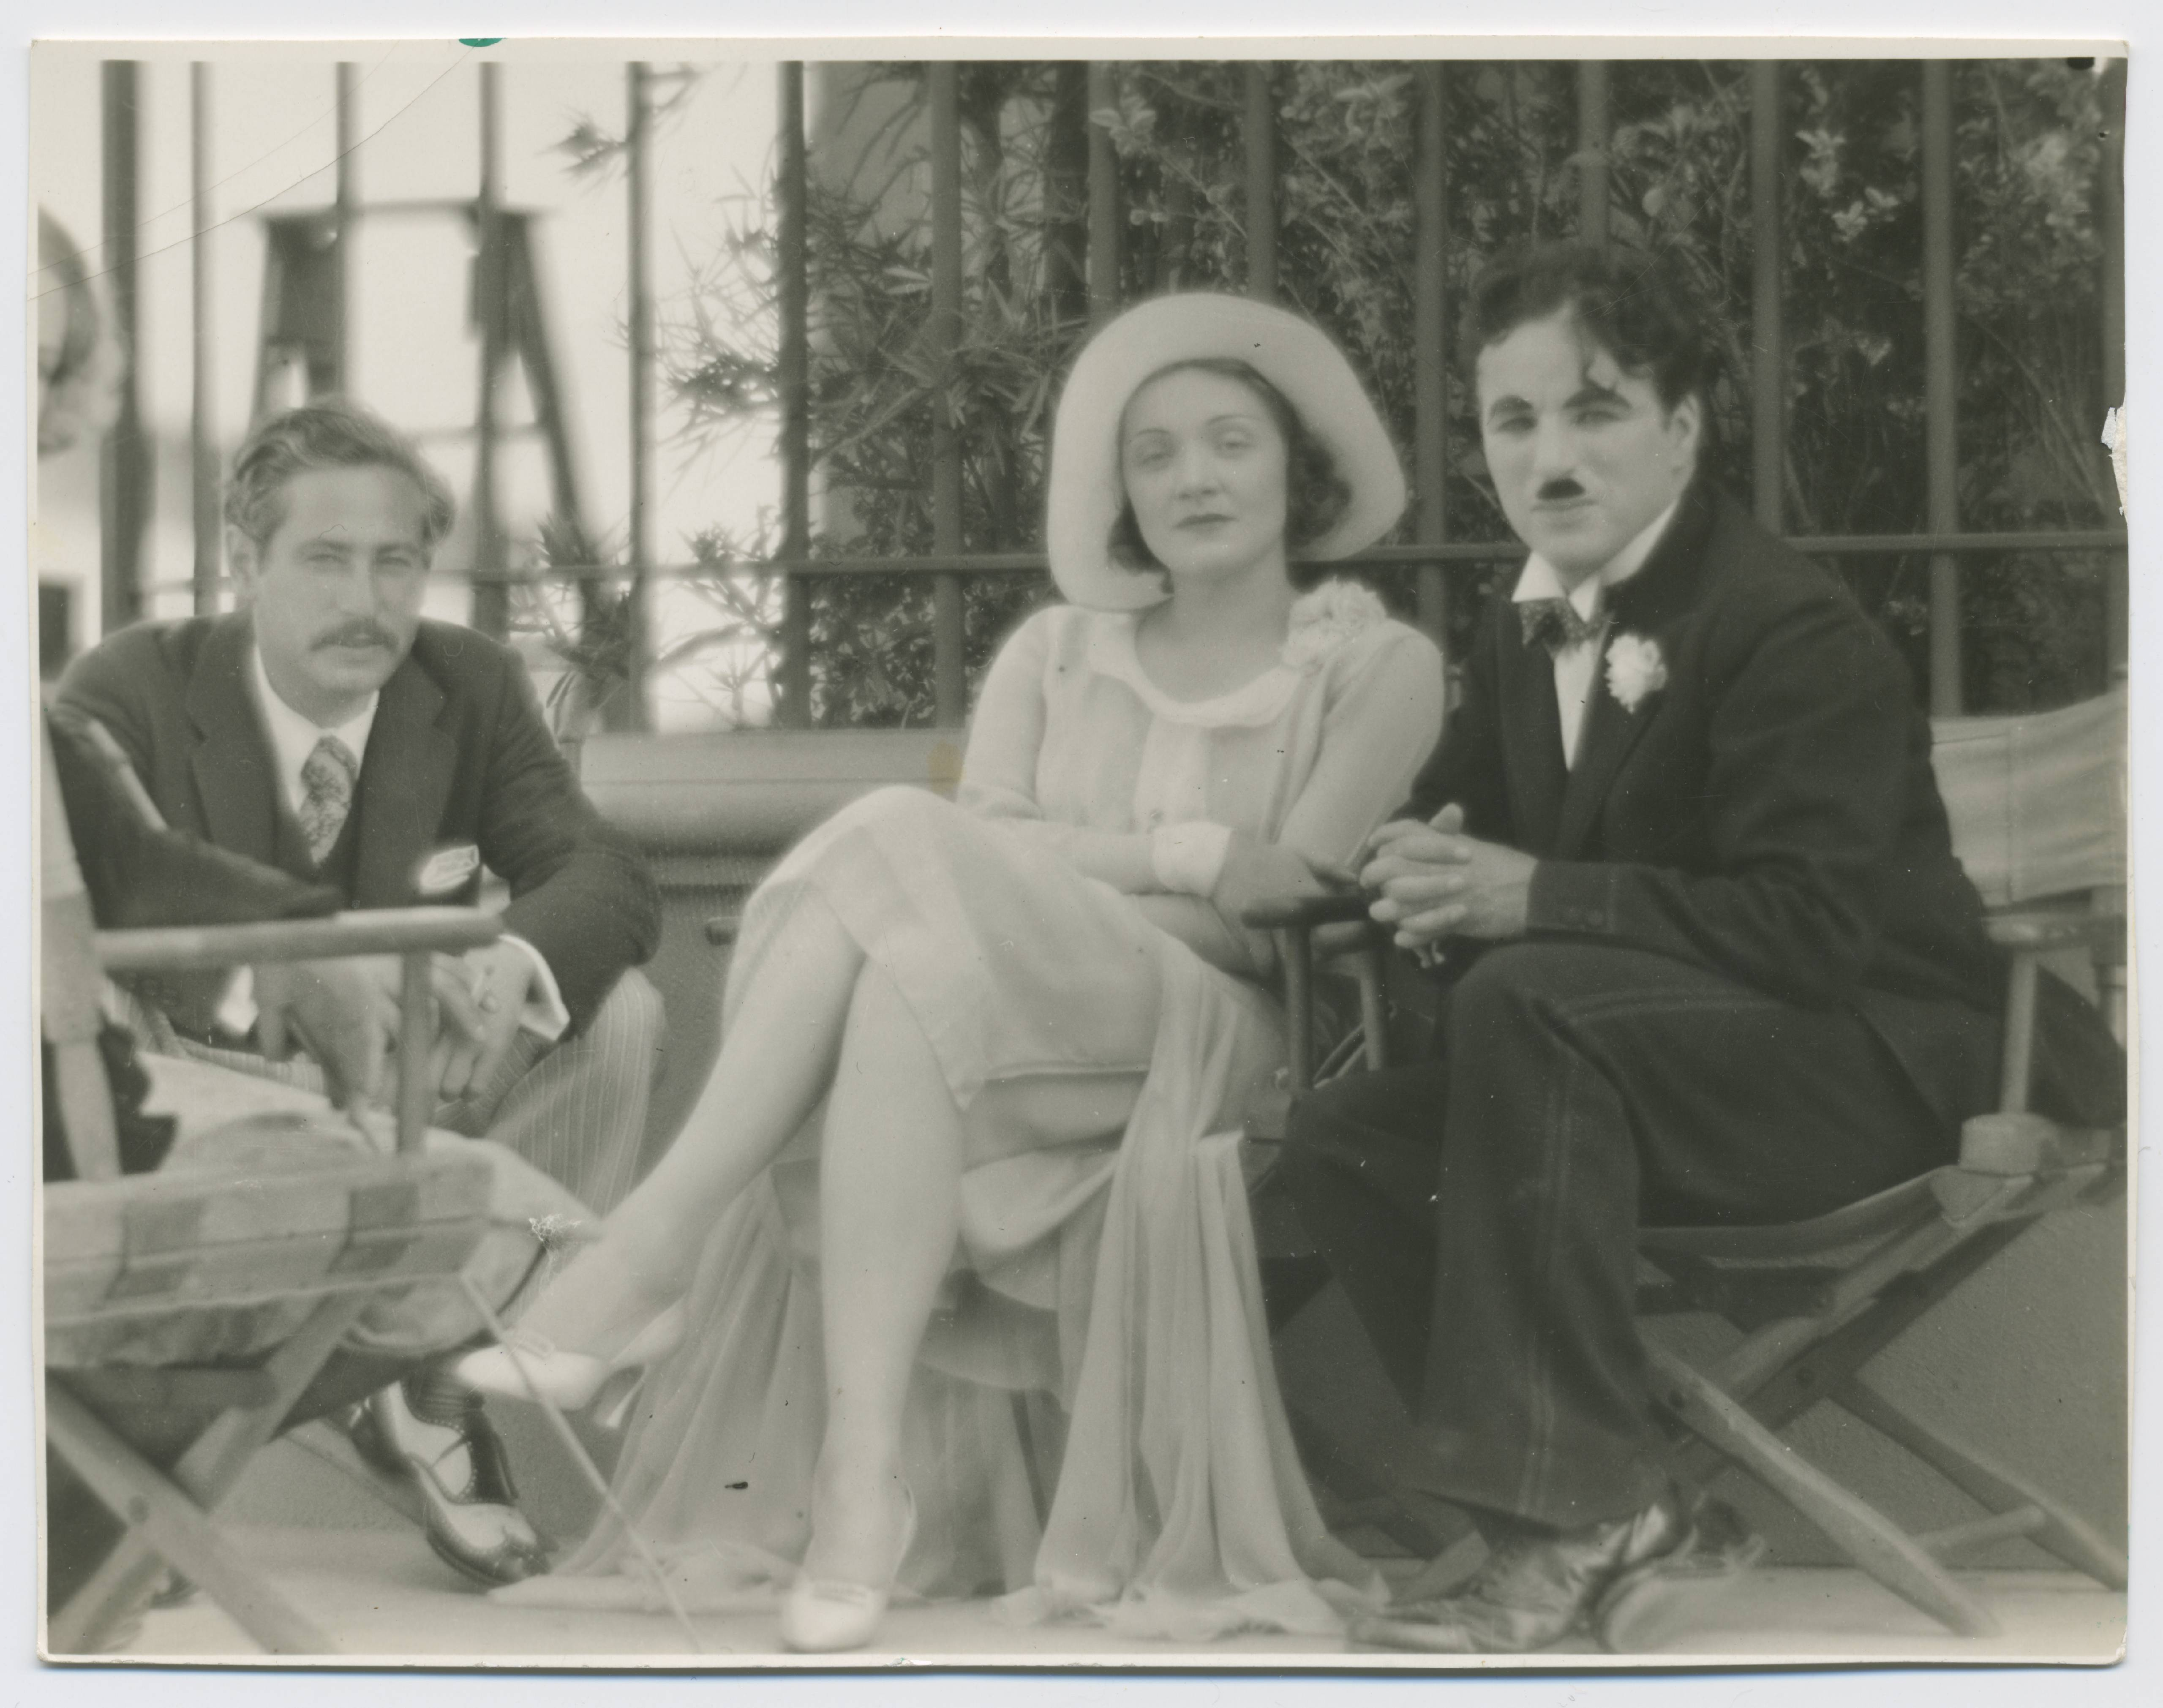 Josef von Sternberg and Marlene Dietrich visit Charlie Chaplin on the set of City Lights (USA 1931, directed by Charlie Chaplin) in Los Angeles